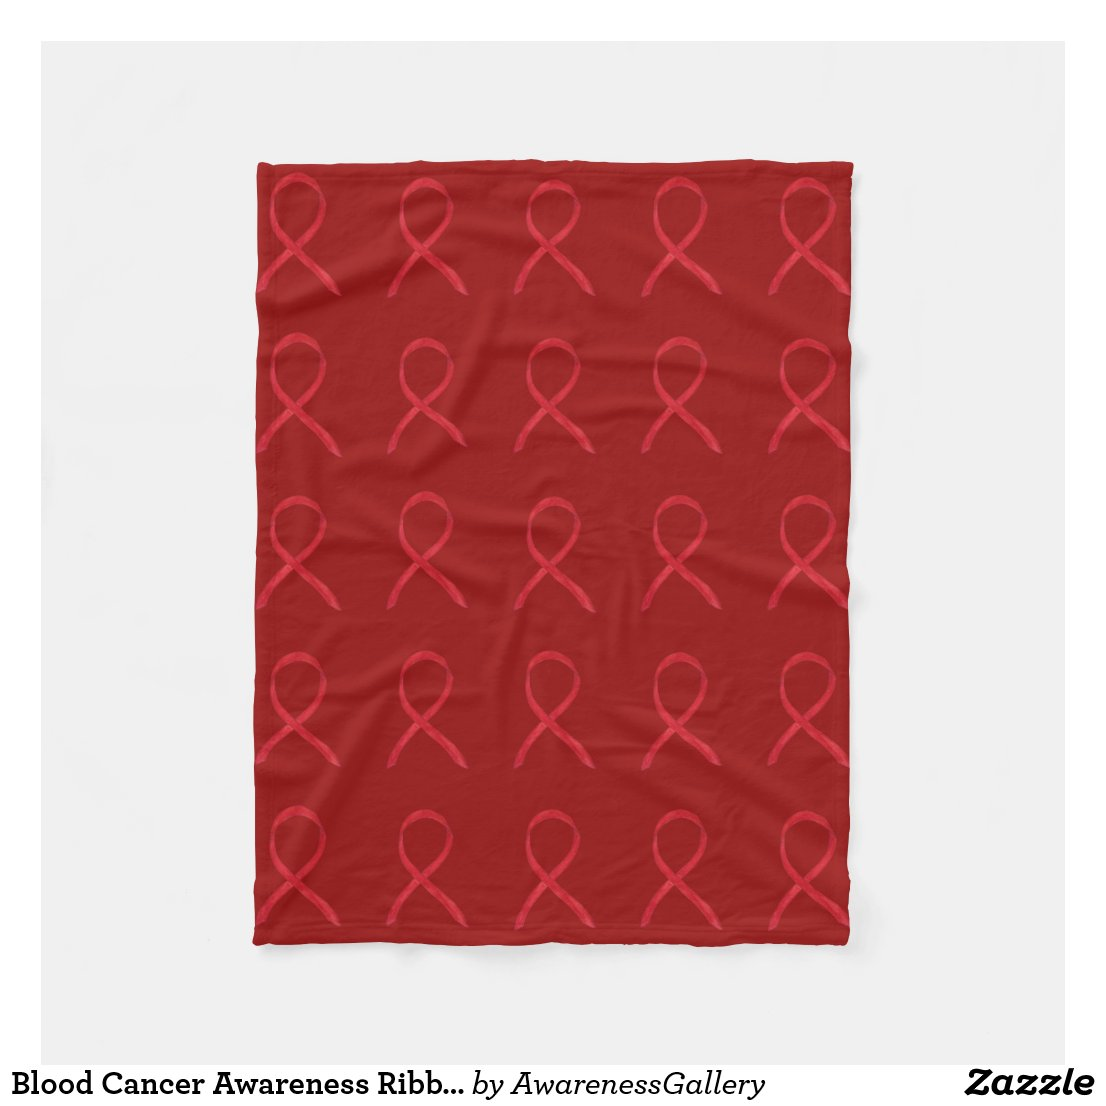 Blood Cancer Awareness Ribbon Soft Fleece Blankets